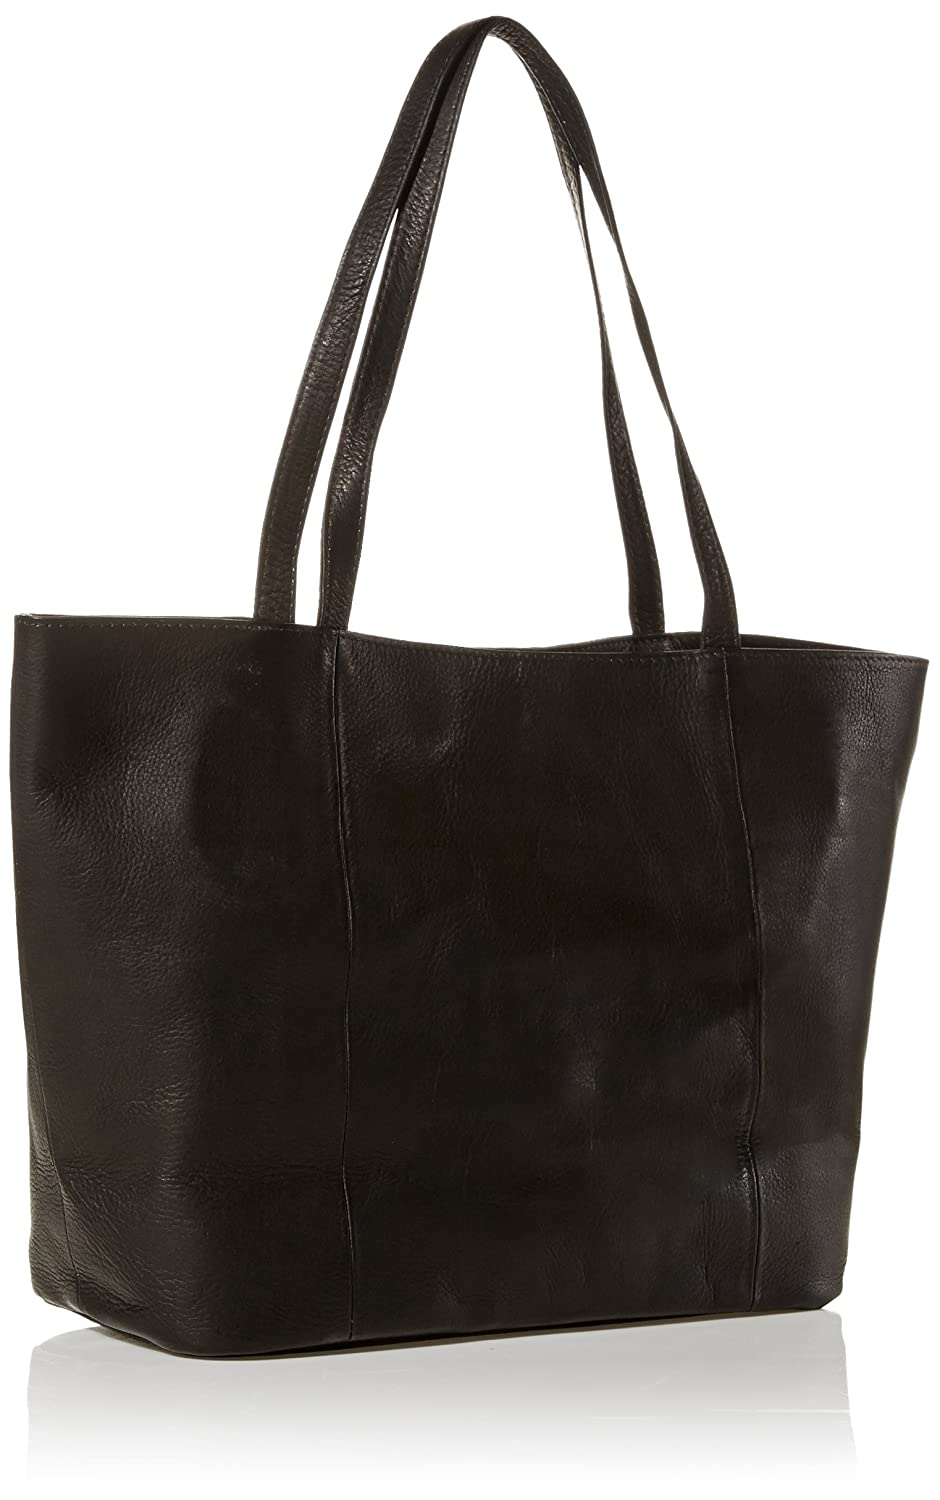 Amazon.com: Piel Leather Tote, Black, One Size: Piel Leather: LEATHEROPOLIS